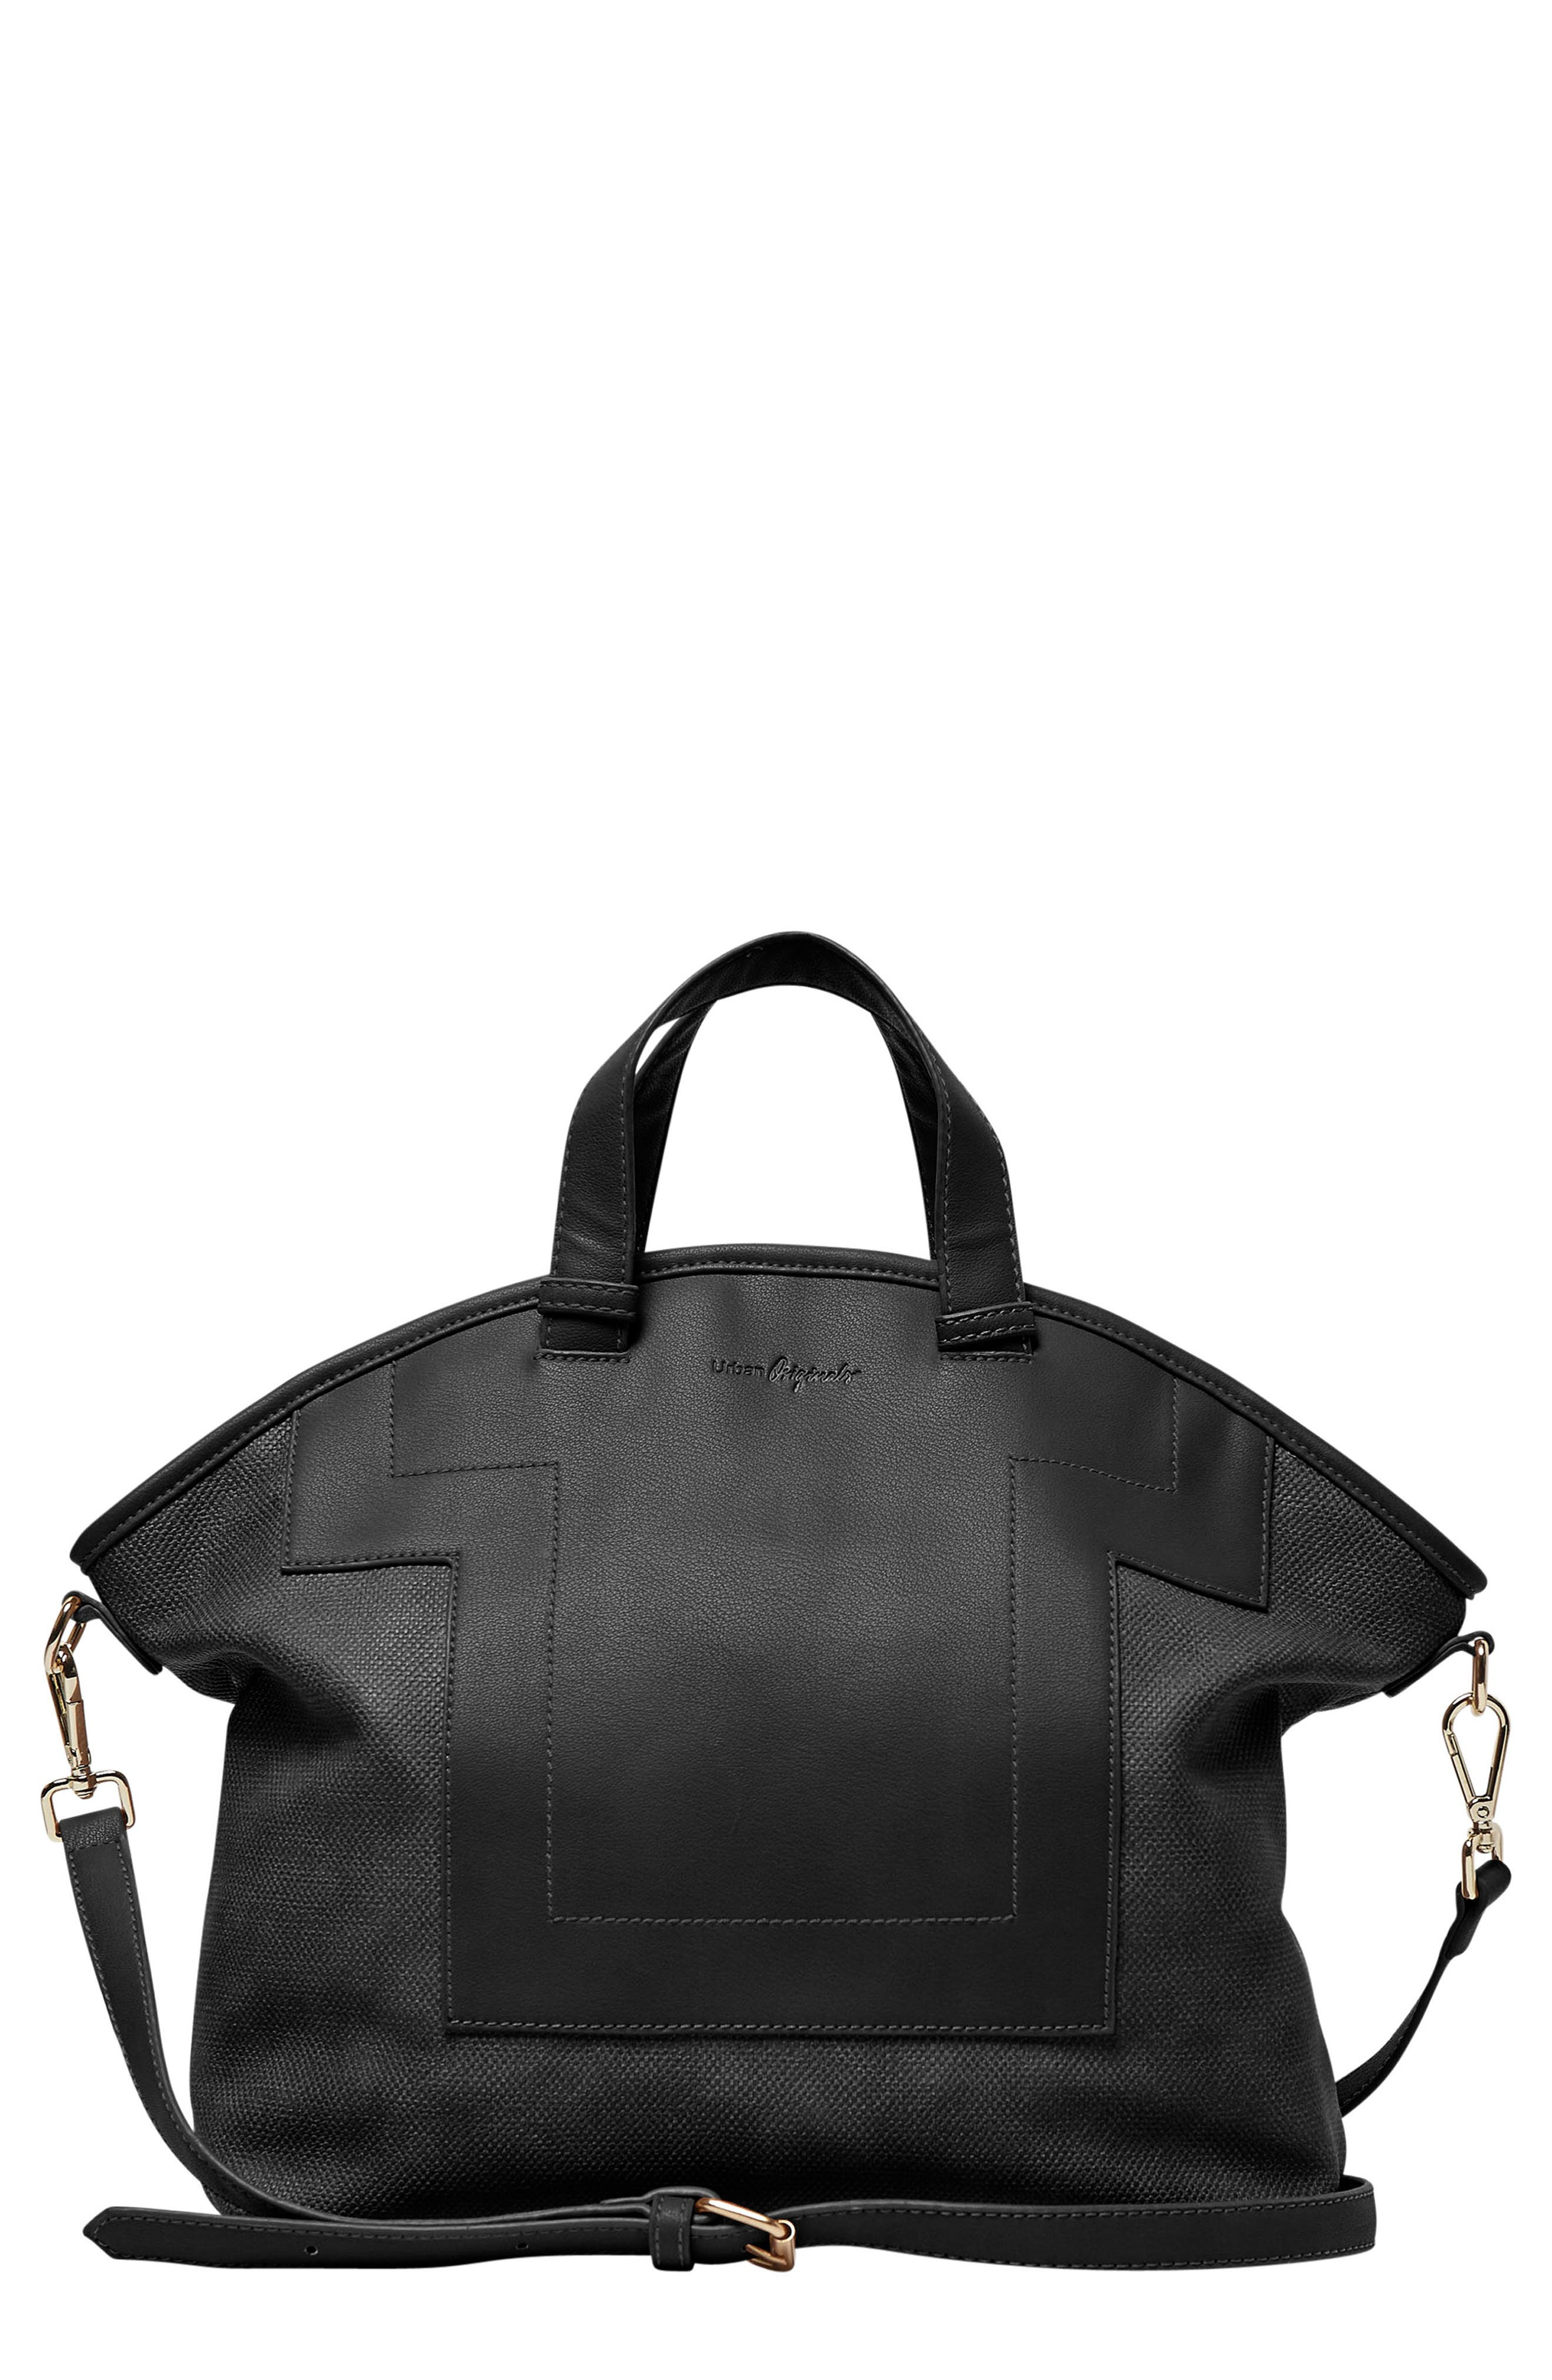 Main Image - Urban Originals Break Away Vegan Leather Tote